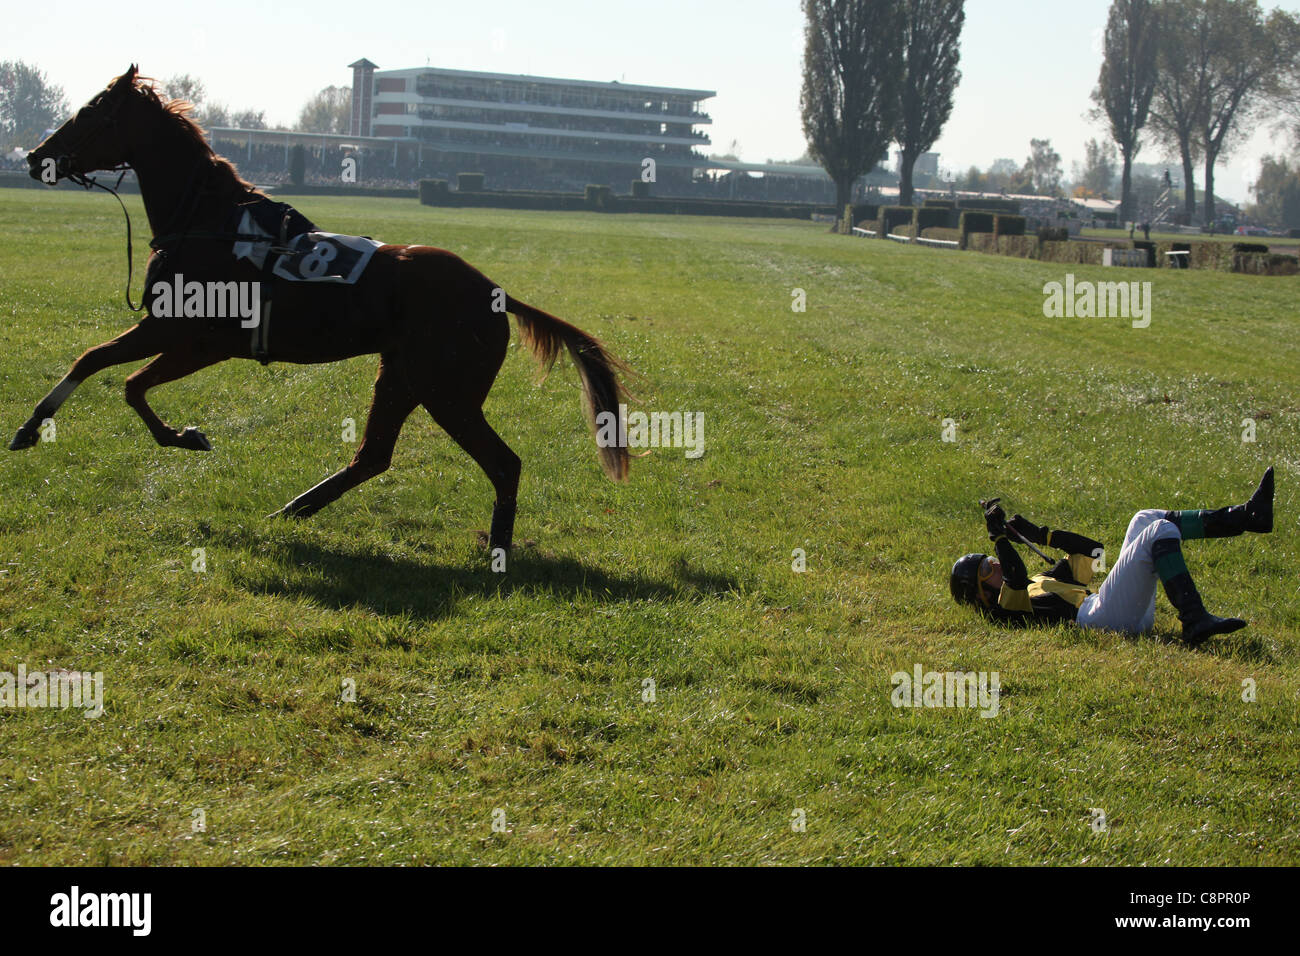 Famous annual steeplechase cross-country run Velka Pardubicka in Pardubice, Czech Republic on 10 October 2010. Stock Photo